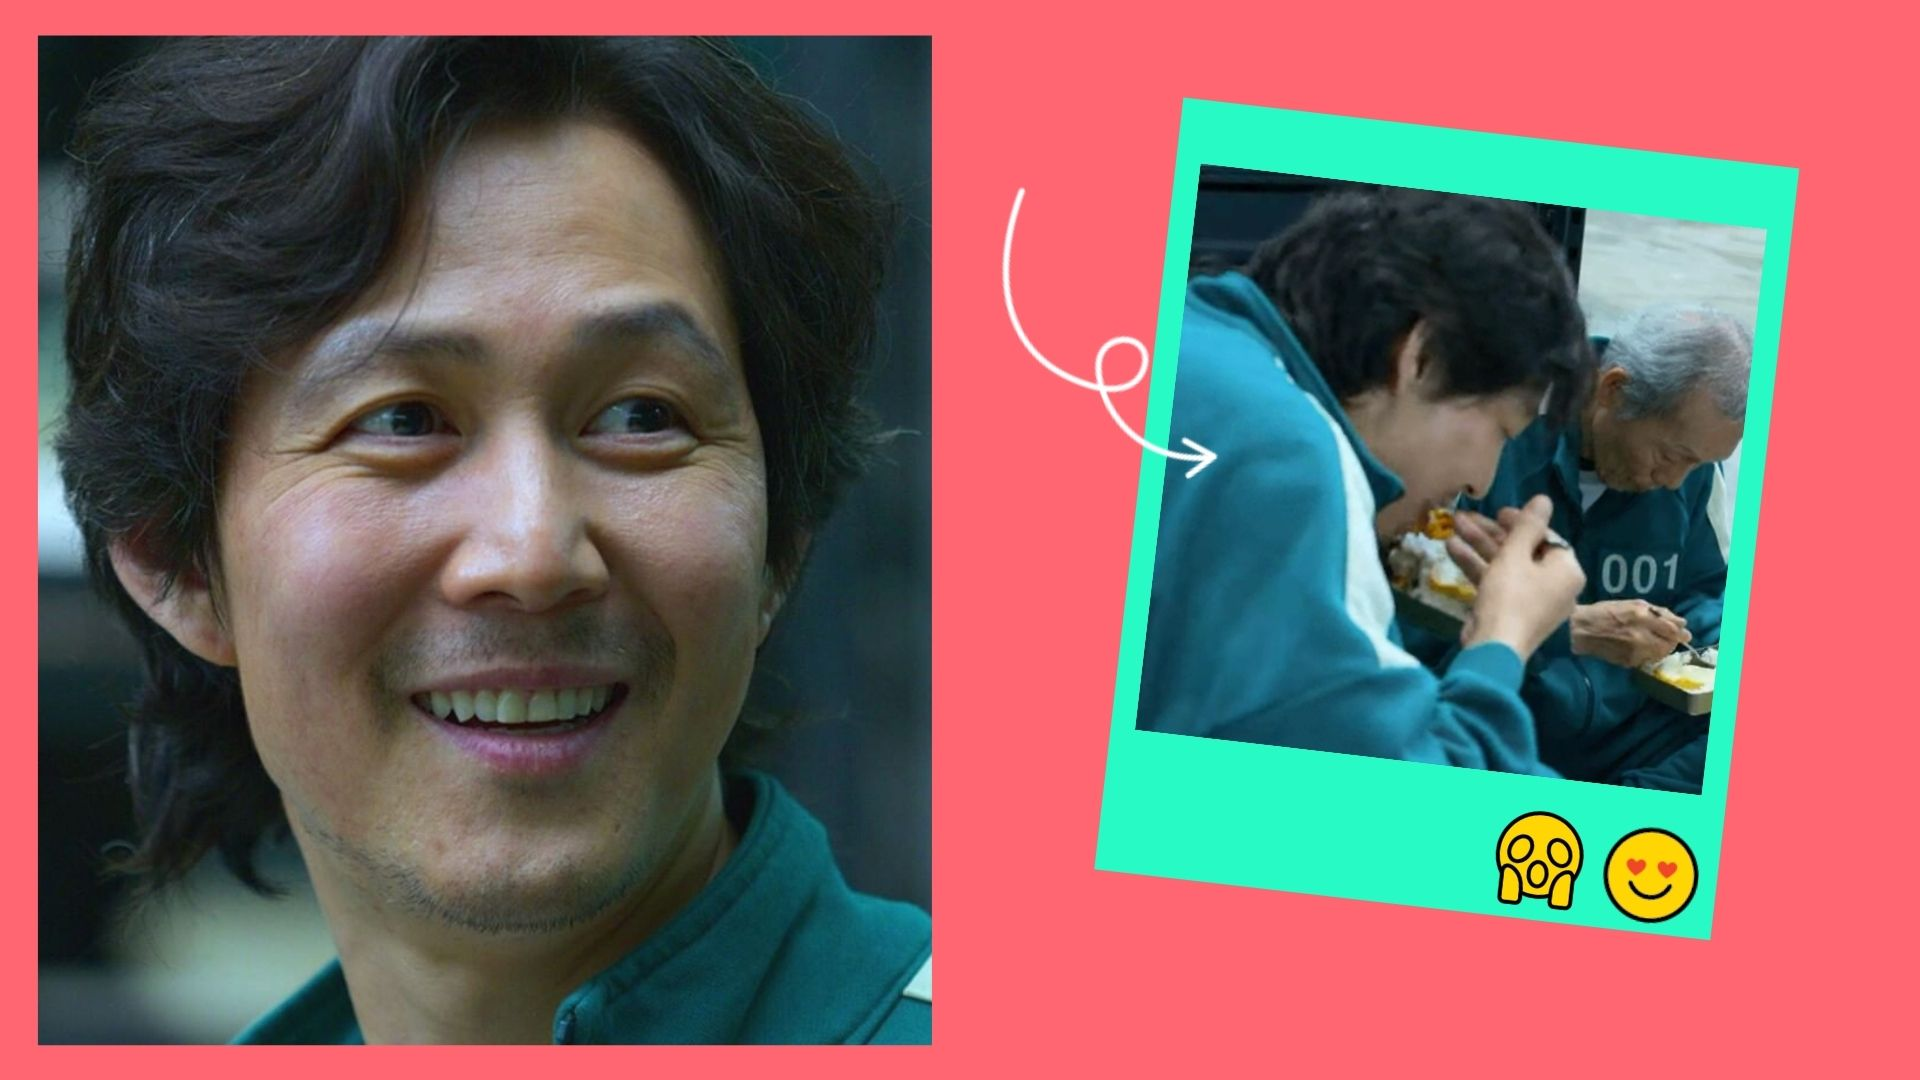 Lee Jung Jae reacts to his viral food scene in Squid Game